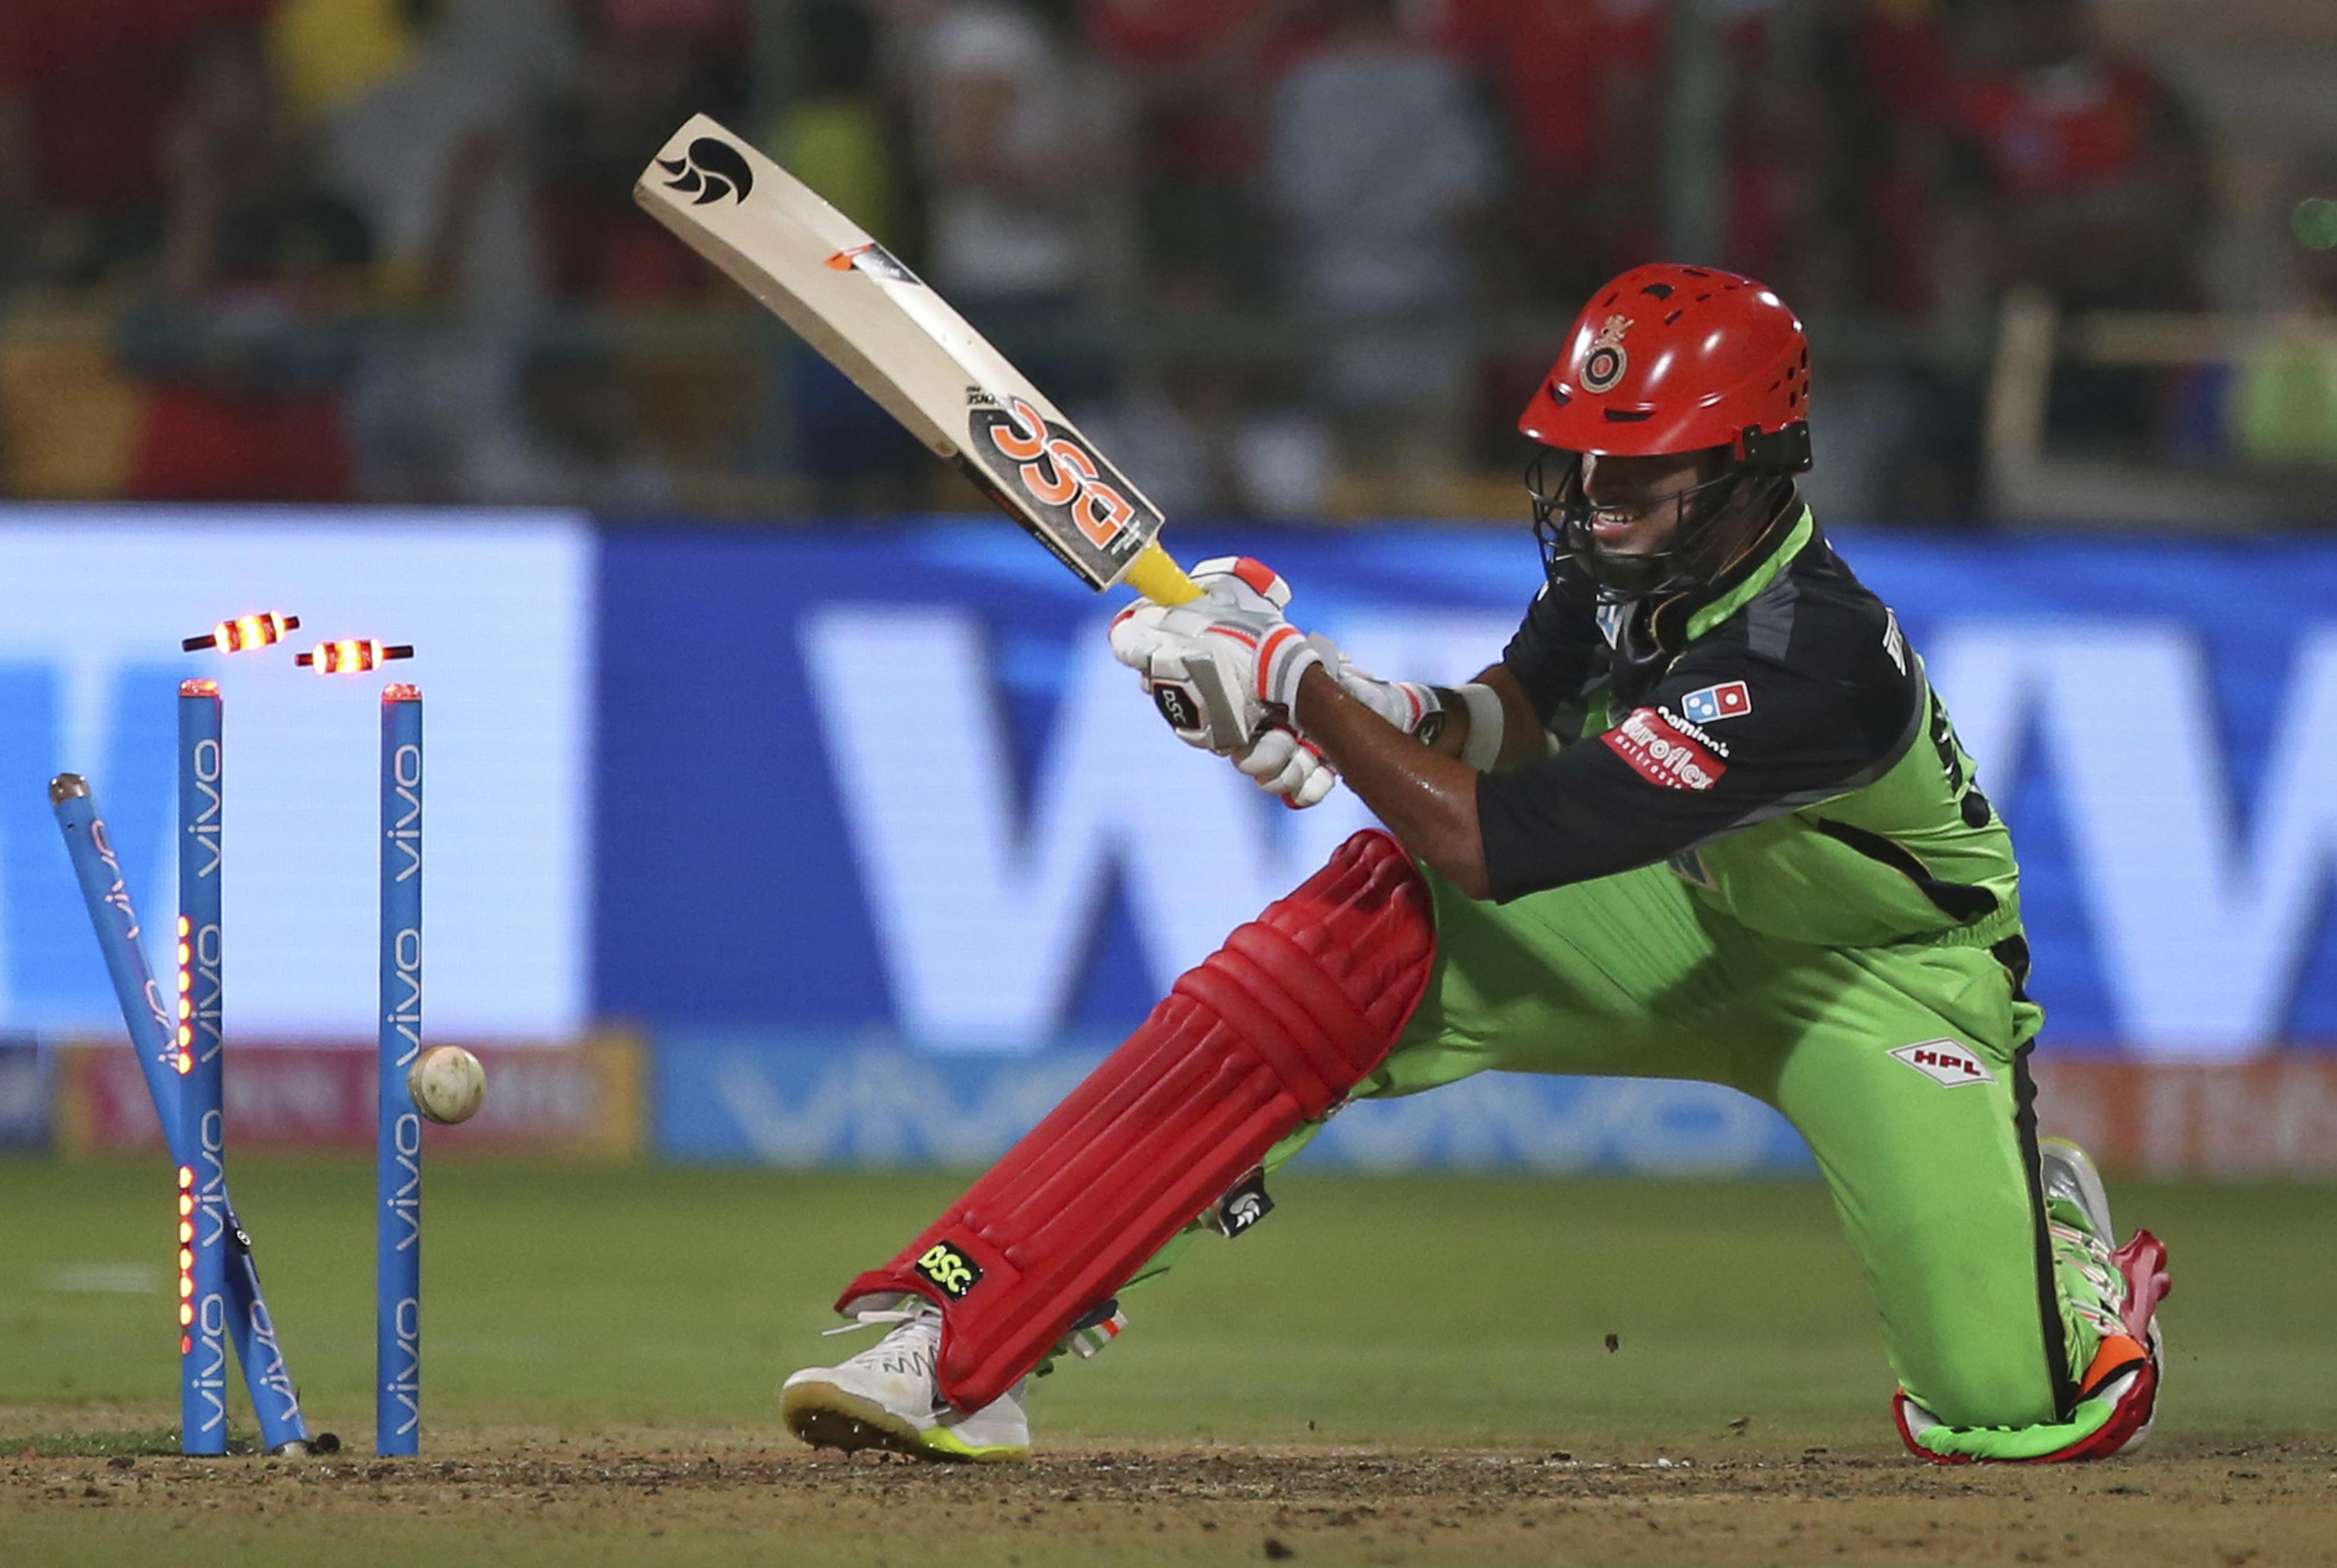 RCB suffered a big defeat at home in their last outing in their green kit against Rajasthan